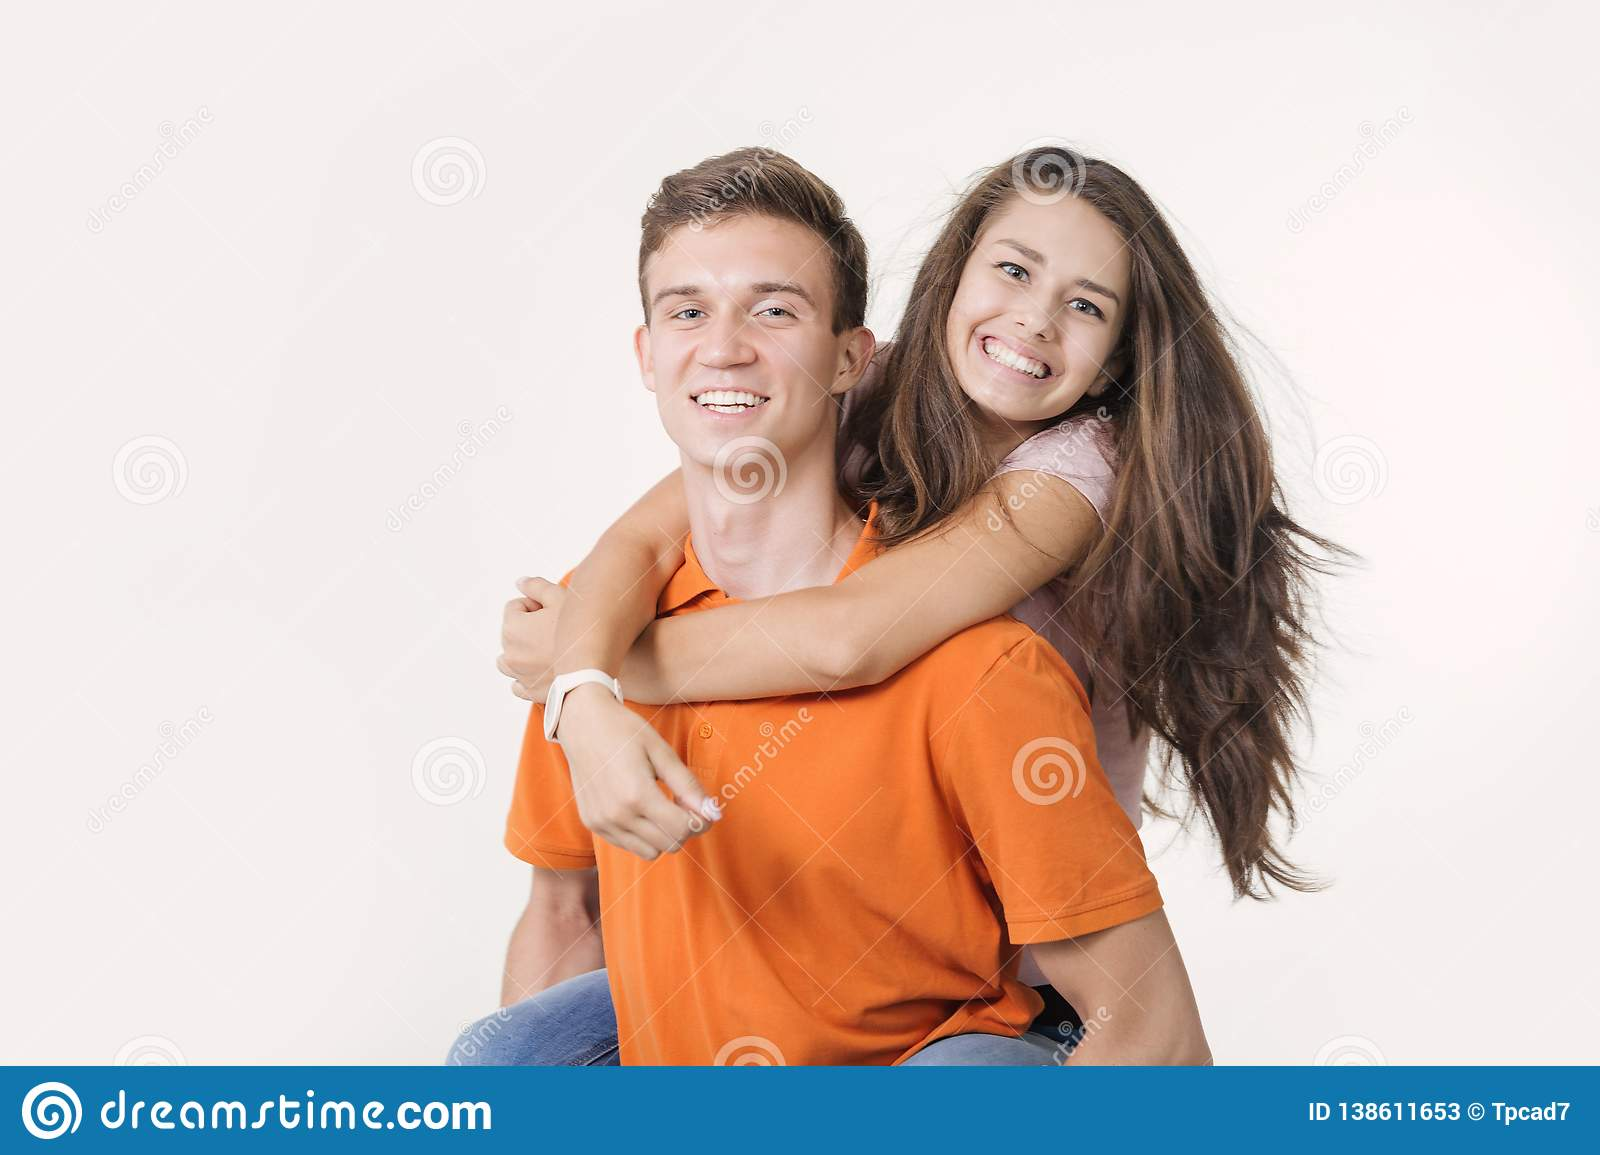 Happy lovely couple hugging and smiling looking at camera on white background